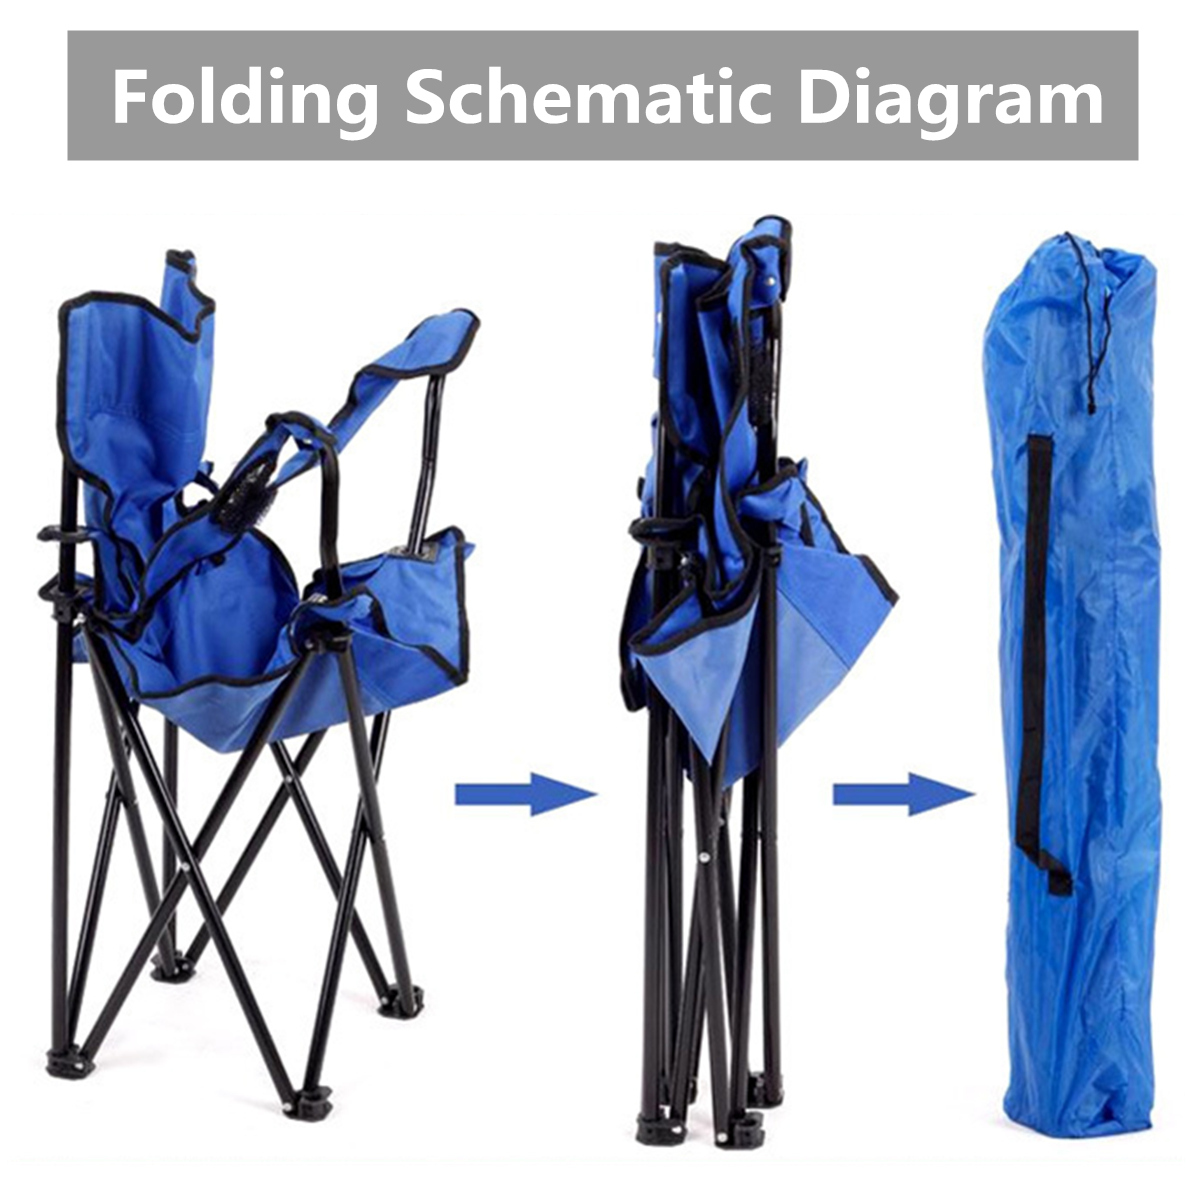 folding chair fishing pole holder sure fit dining covers nz outdoor portable camping beach picnic shipping methods